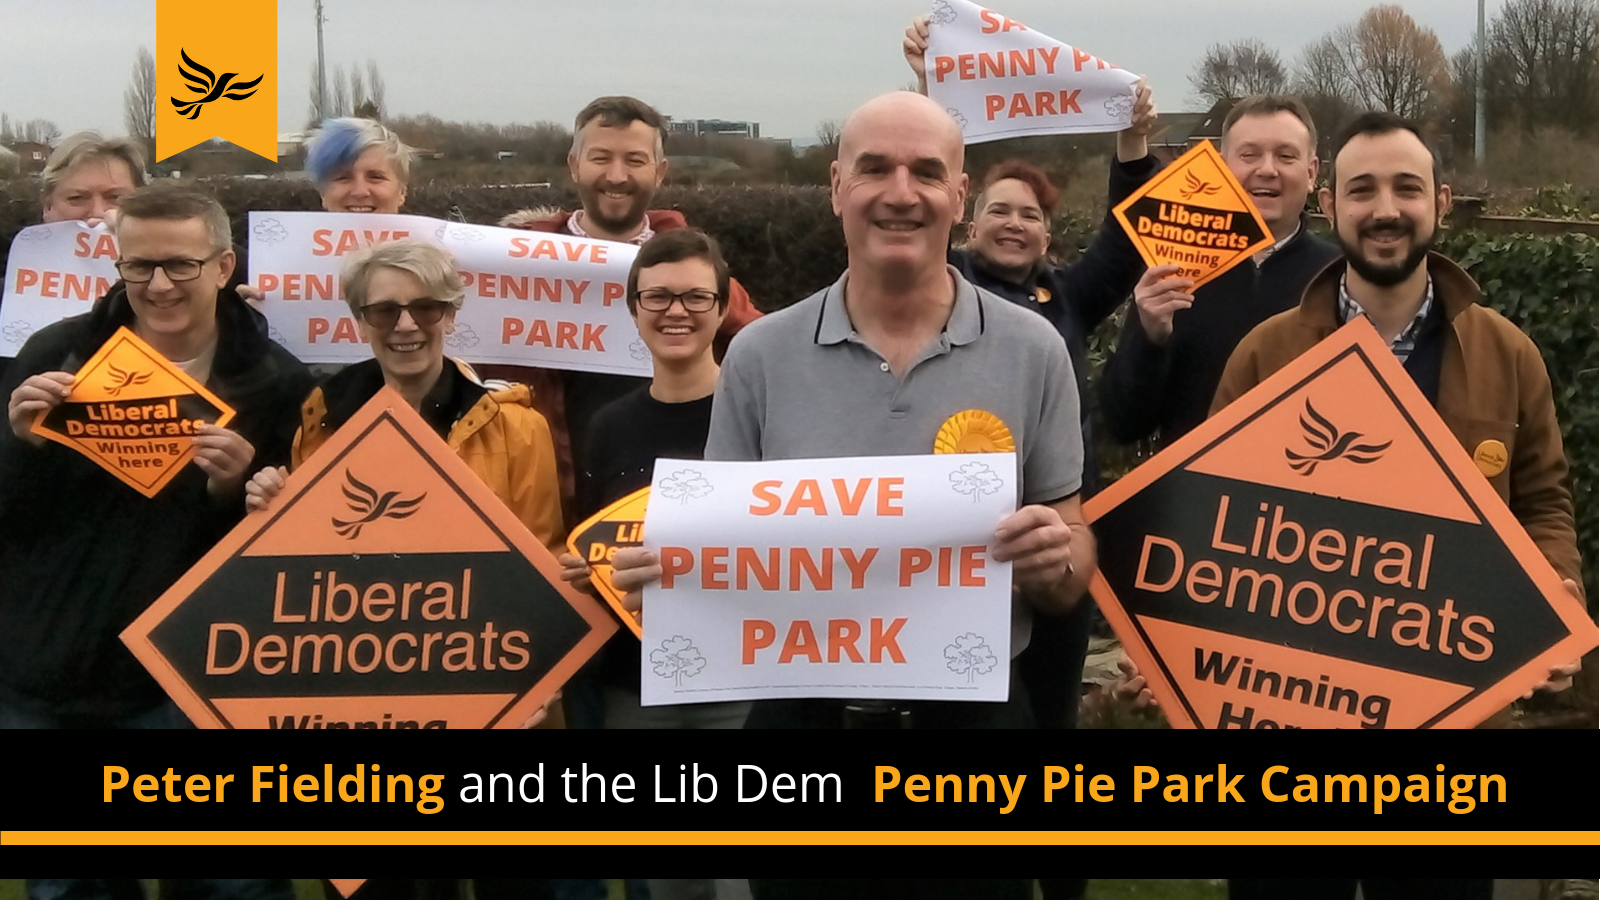 Peter Fielding and Penny Pie Park